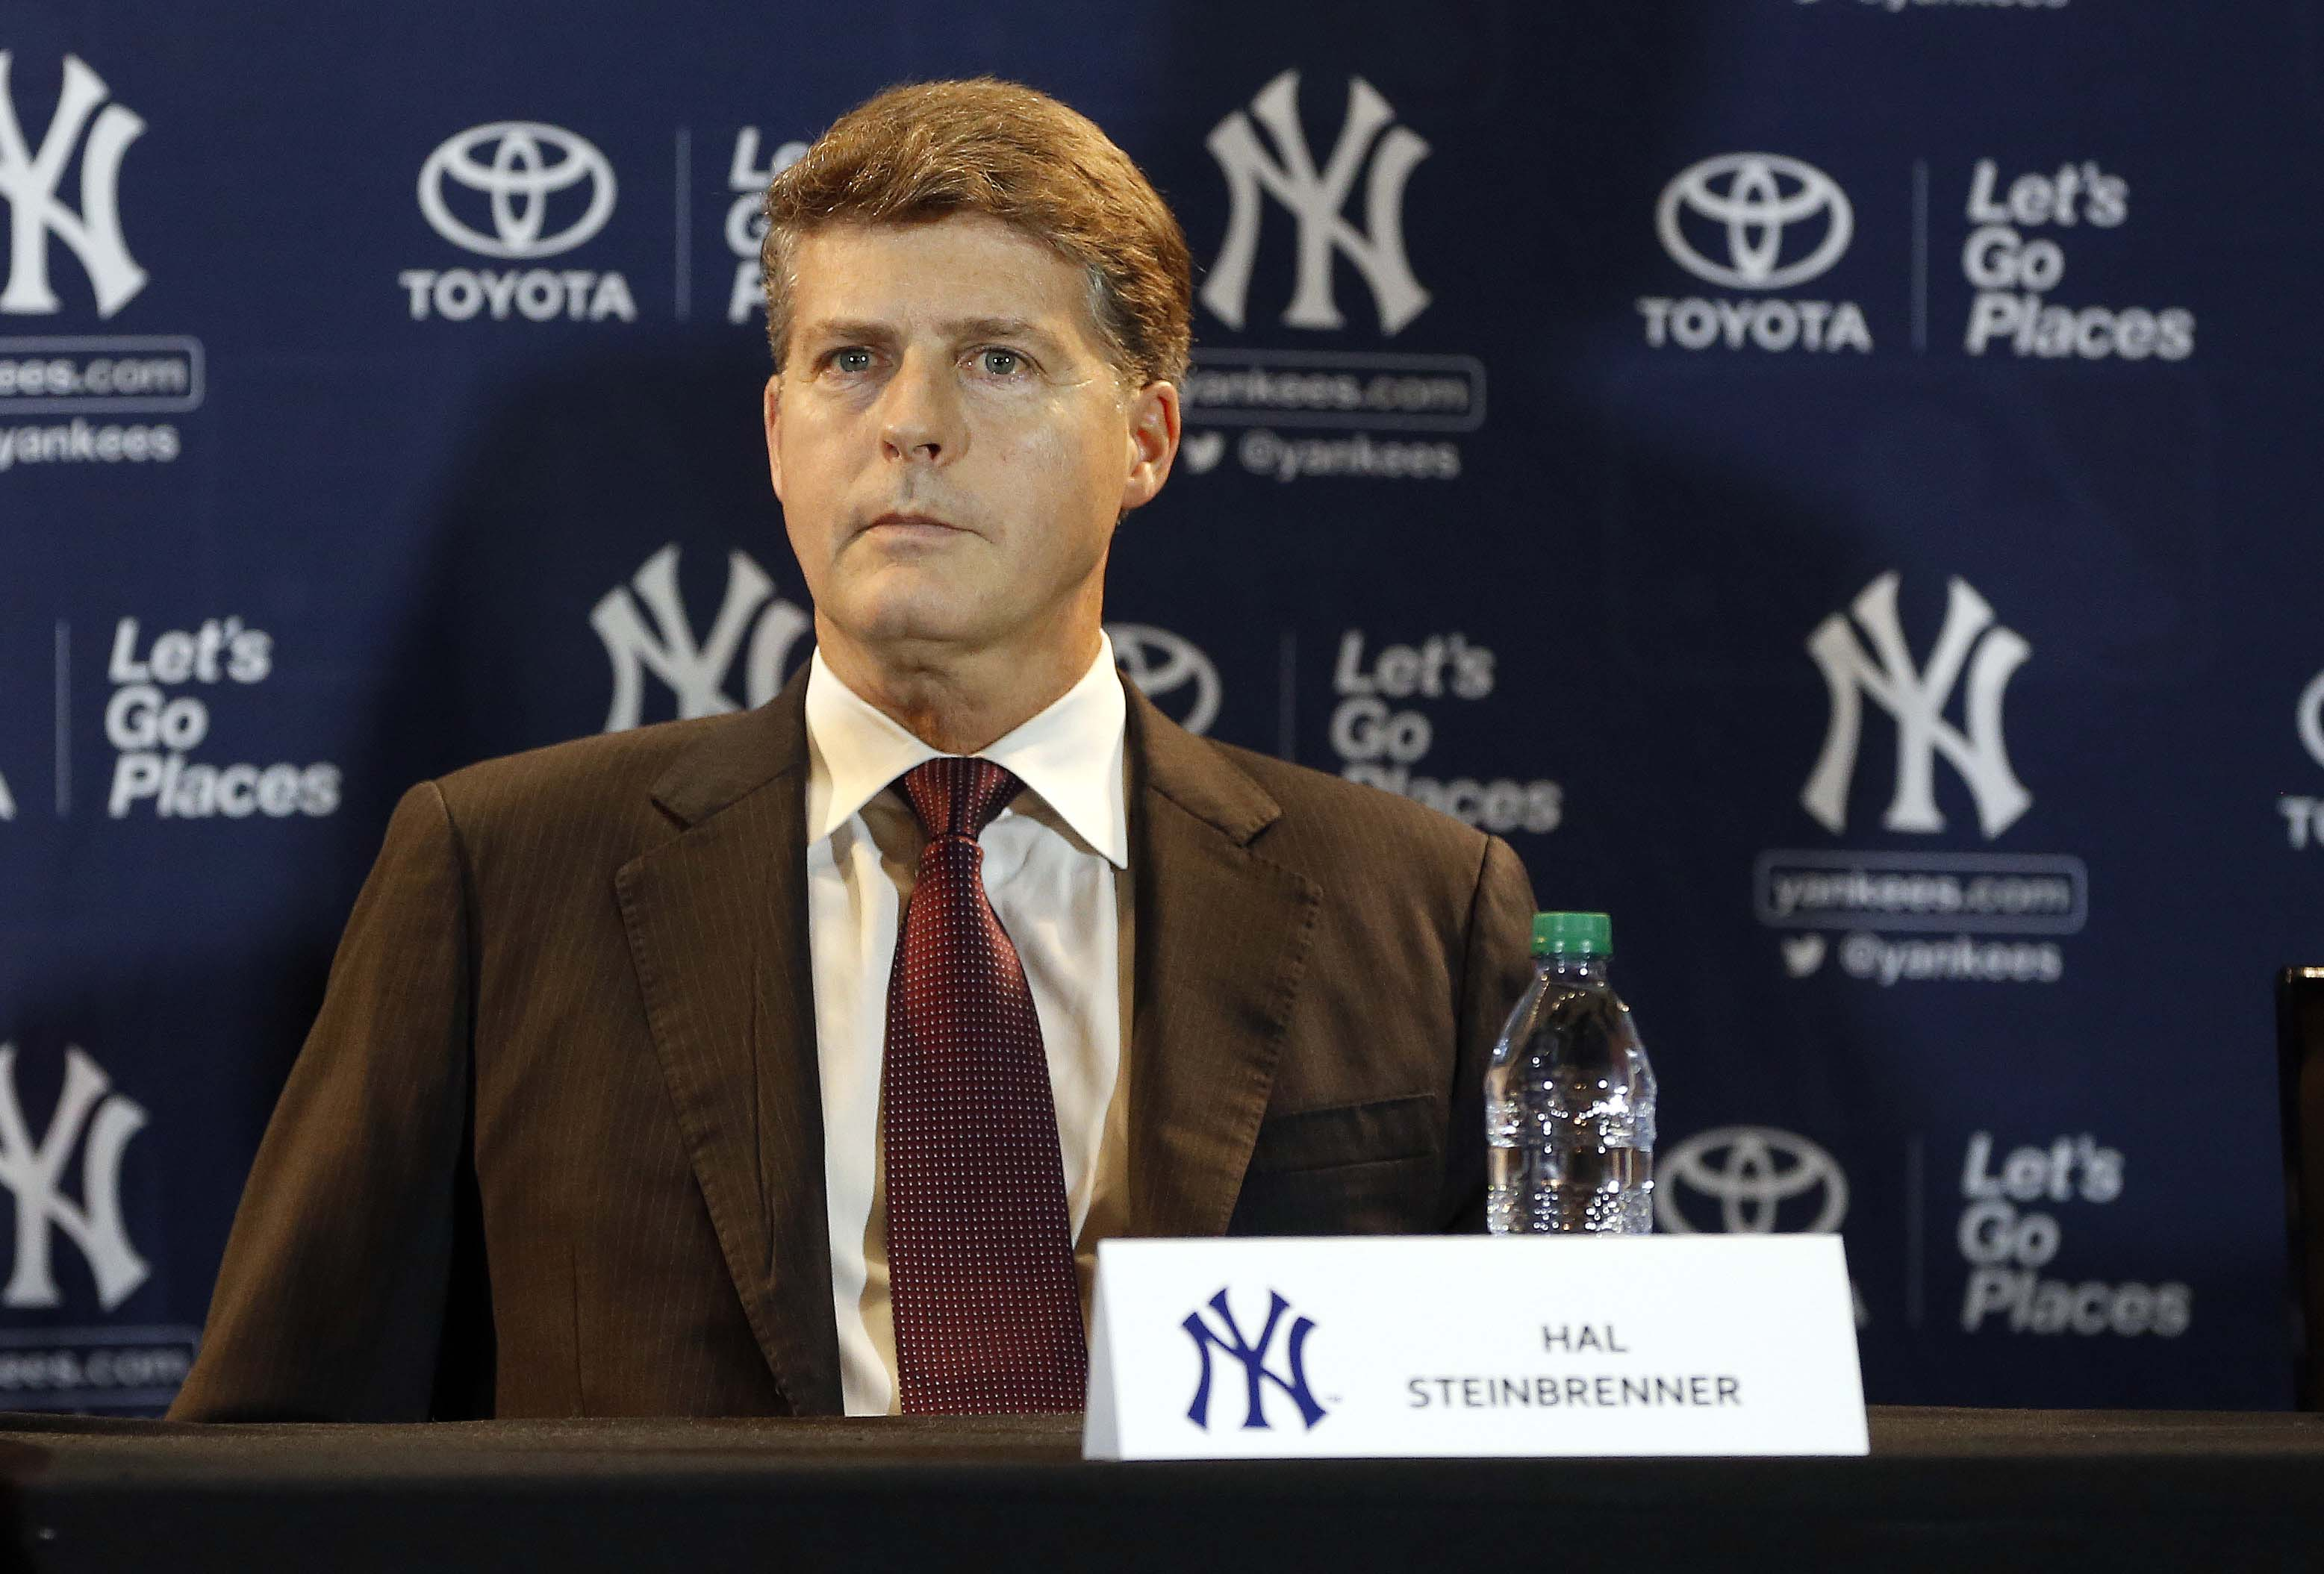 New York Yankees, Hal Steinbrenner